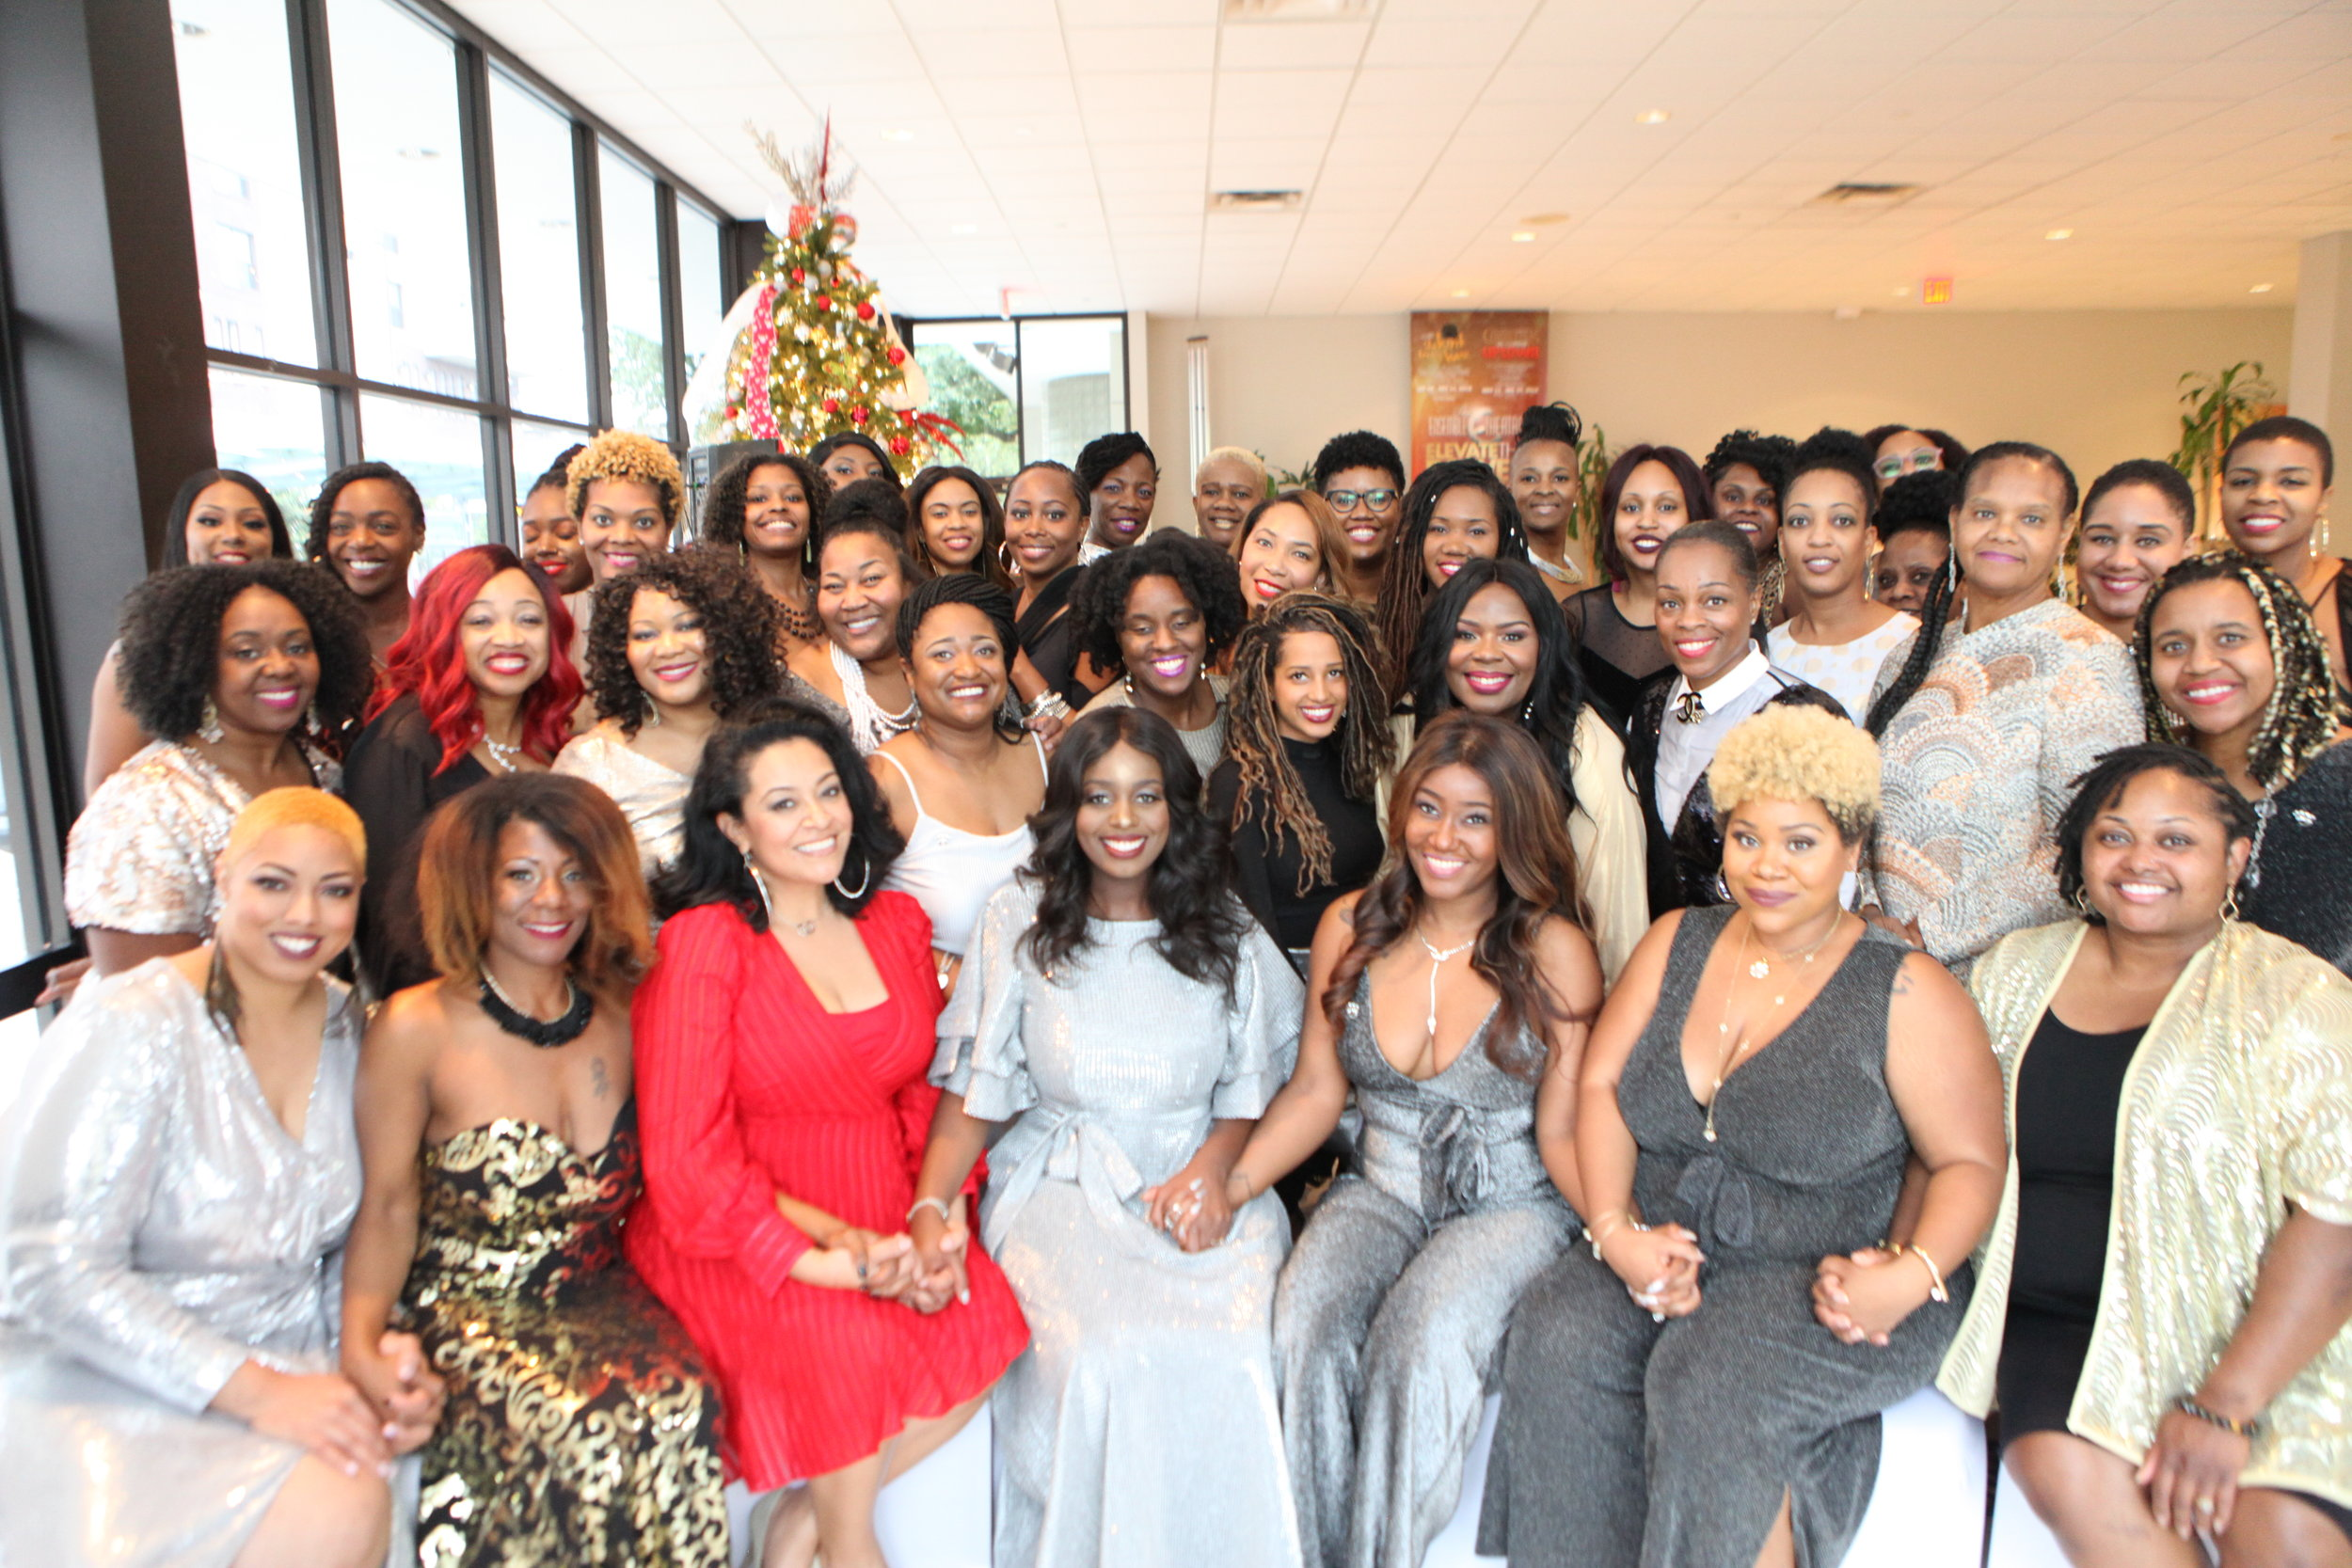 The Woman's Earth Tribe attending the 3rd Annual New Years Eve Brunch in 2018 hosted by our Founder, Jai Pierre Raven.